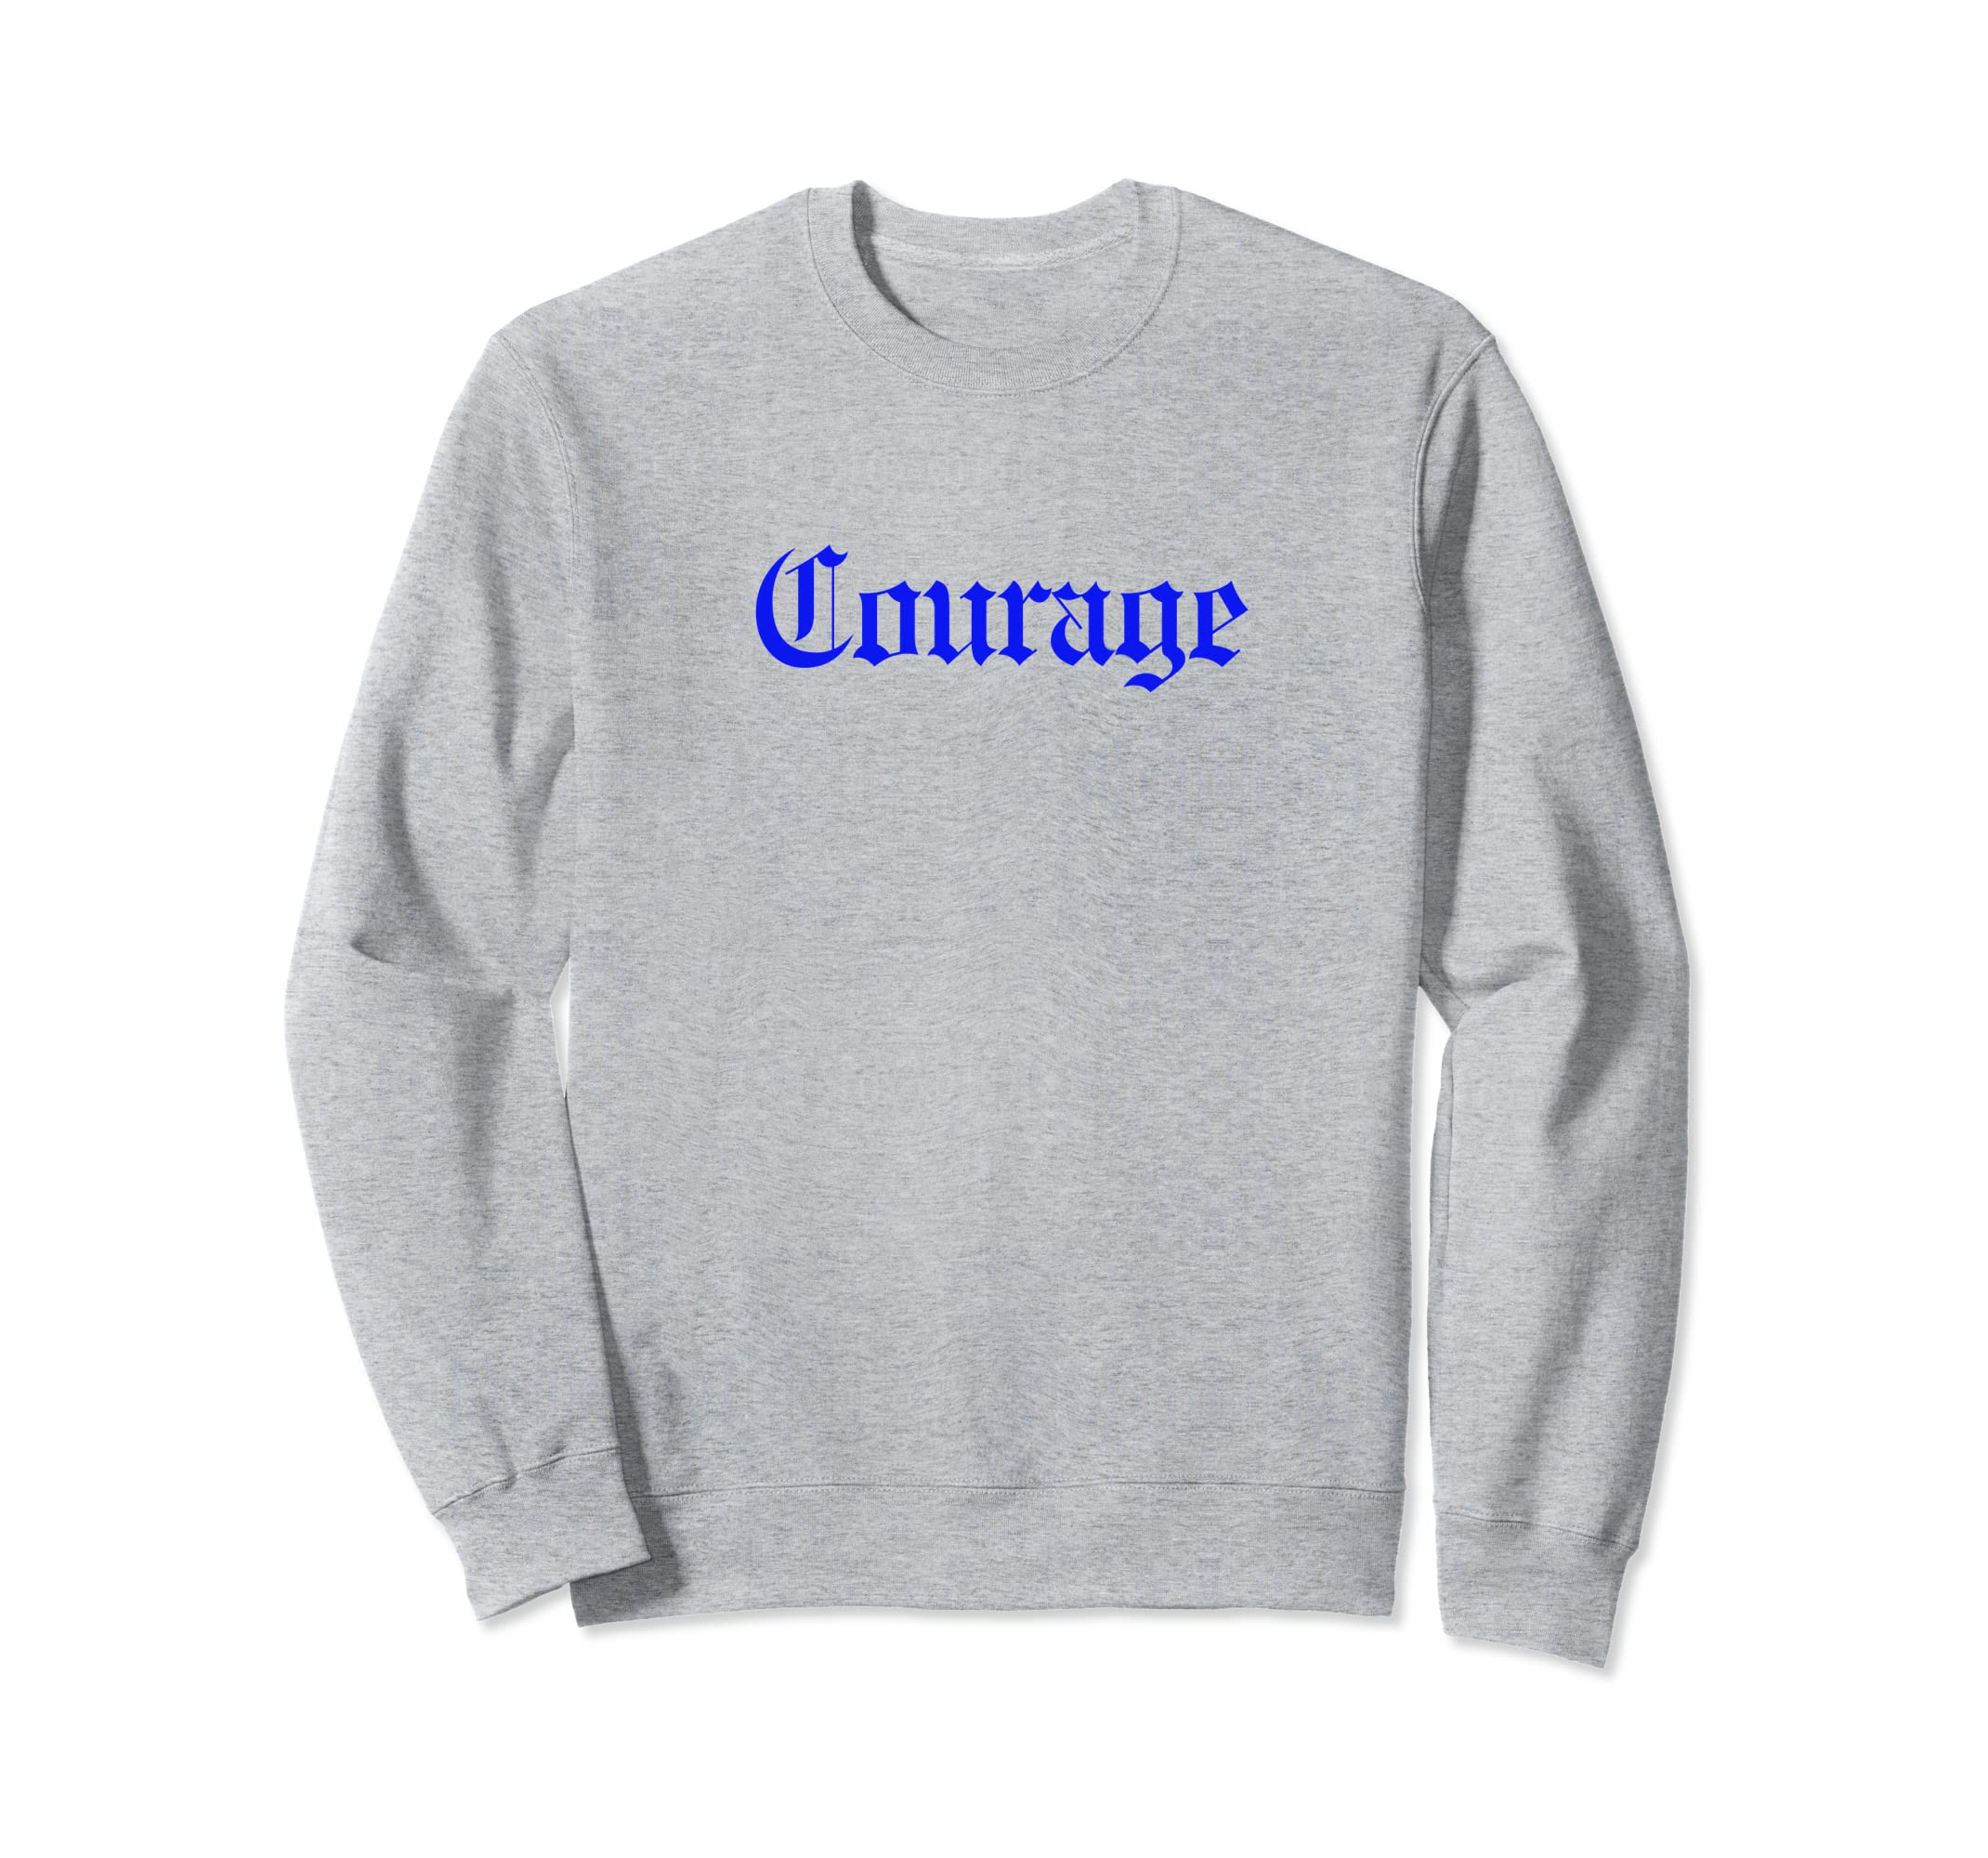 b79cdd8f Amazon.com: Courage Sweatshirt, Hipster Clothes, Dope Streetwear: Clothing